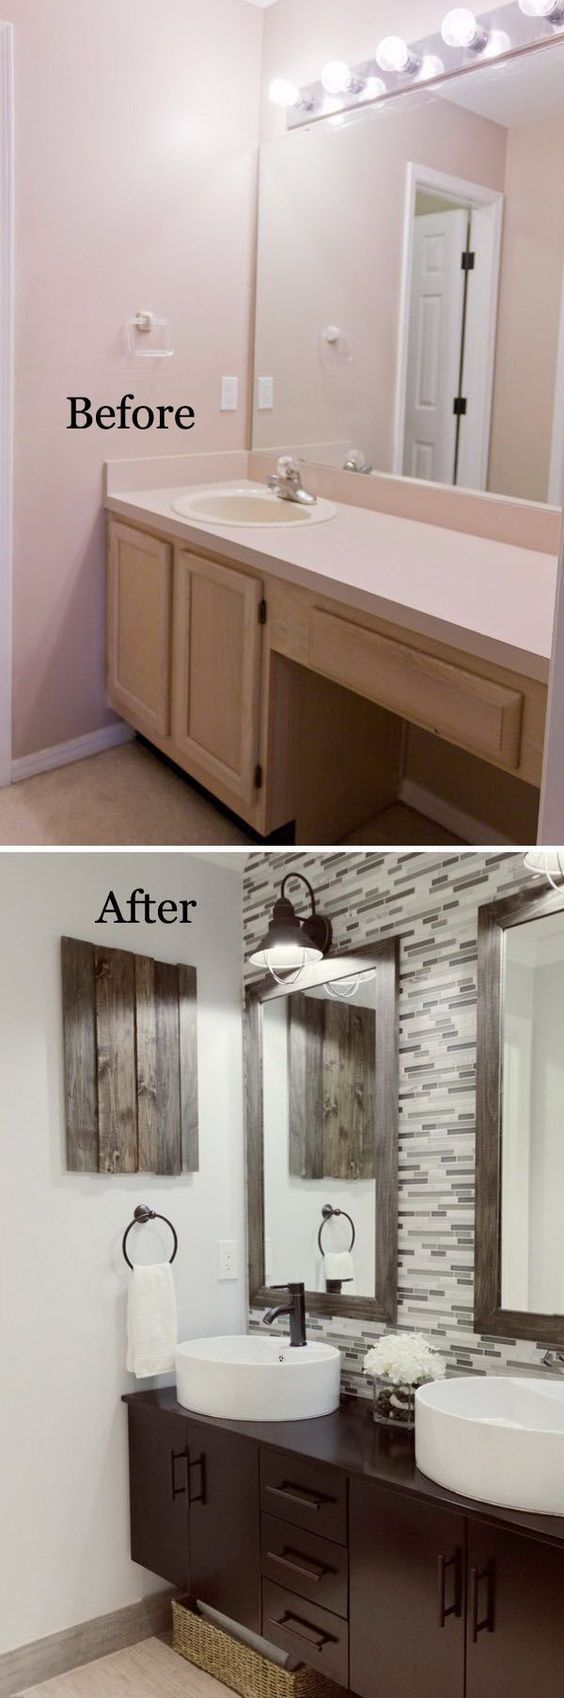 More ideas below: #BathroomIdeas BathroomRemodel #Bathroom #Remodel #MakeOver Small Bathroom Remodel On A Budget DIY Bathroom Remodel Ideas With Tub Half Paint Bathroom Shower Remodel Master Tile Farmhouse Bathroom Remodel Rustic Bathroom Remodel Before And After